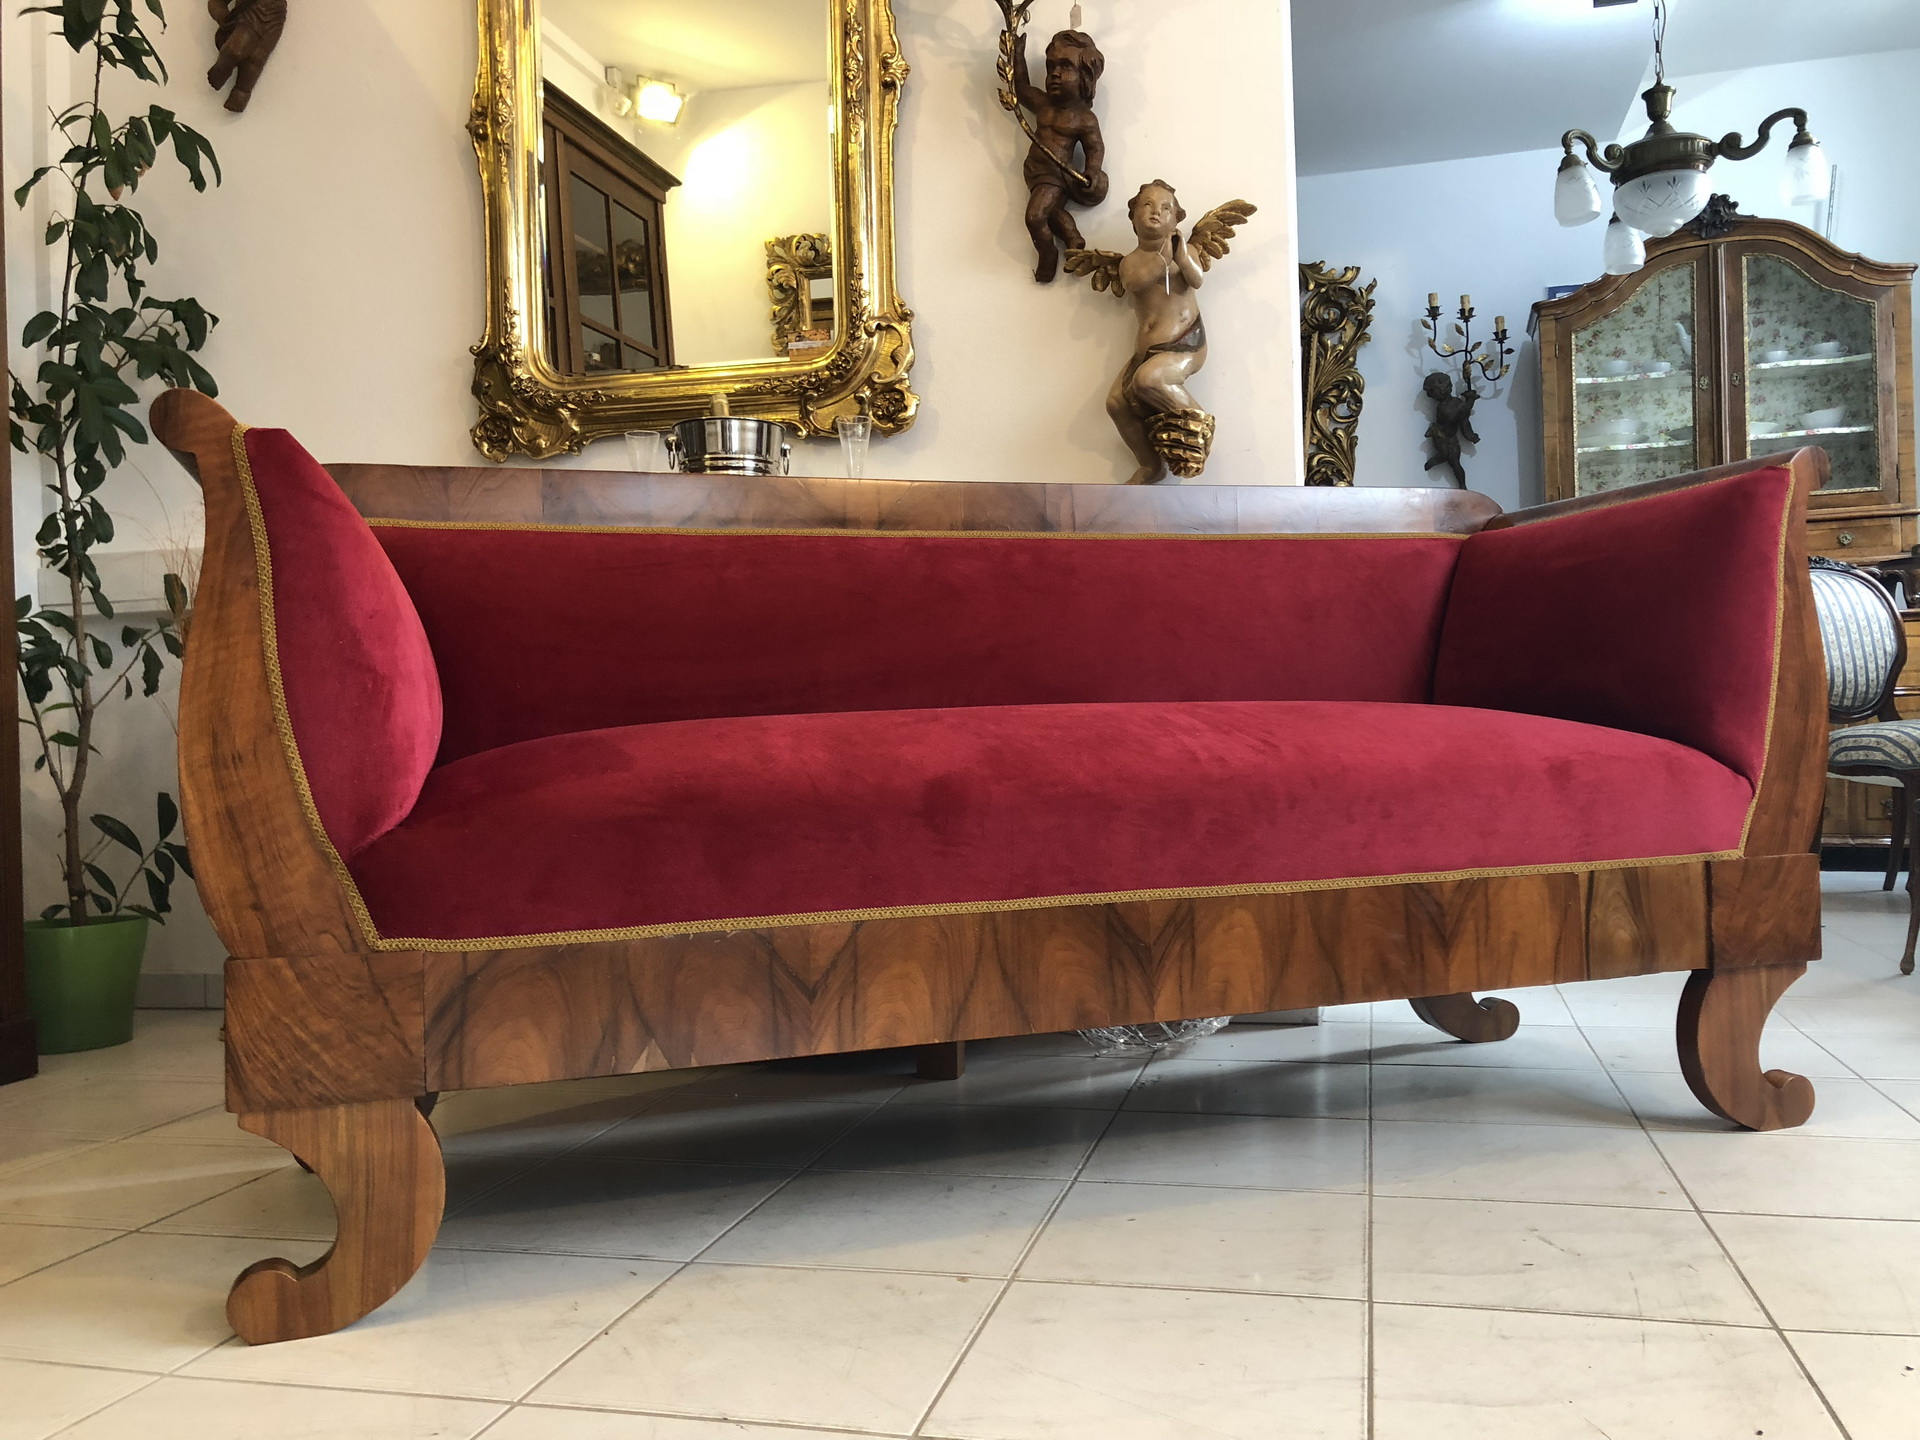 Restored Original Biedermeier Sofa Made of Walnut, Red Velvet